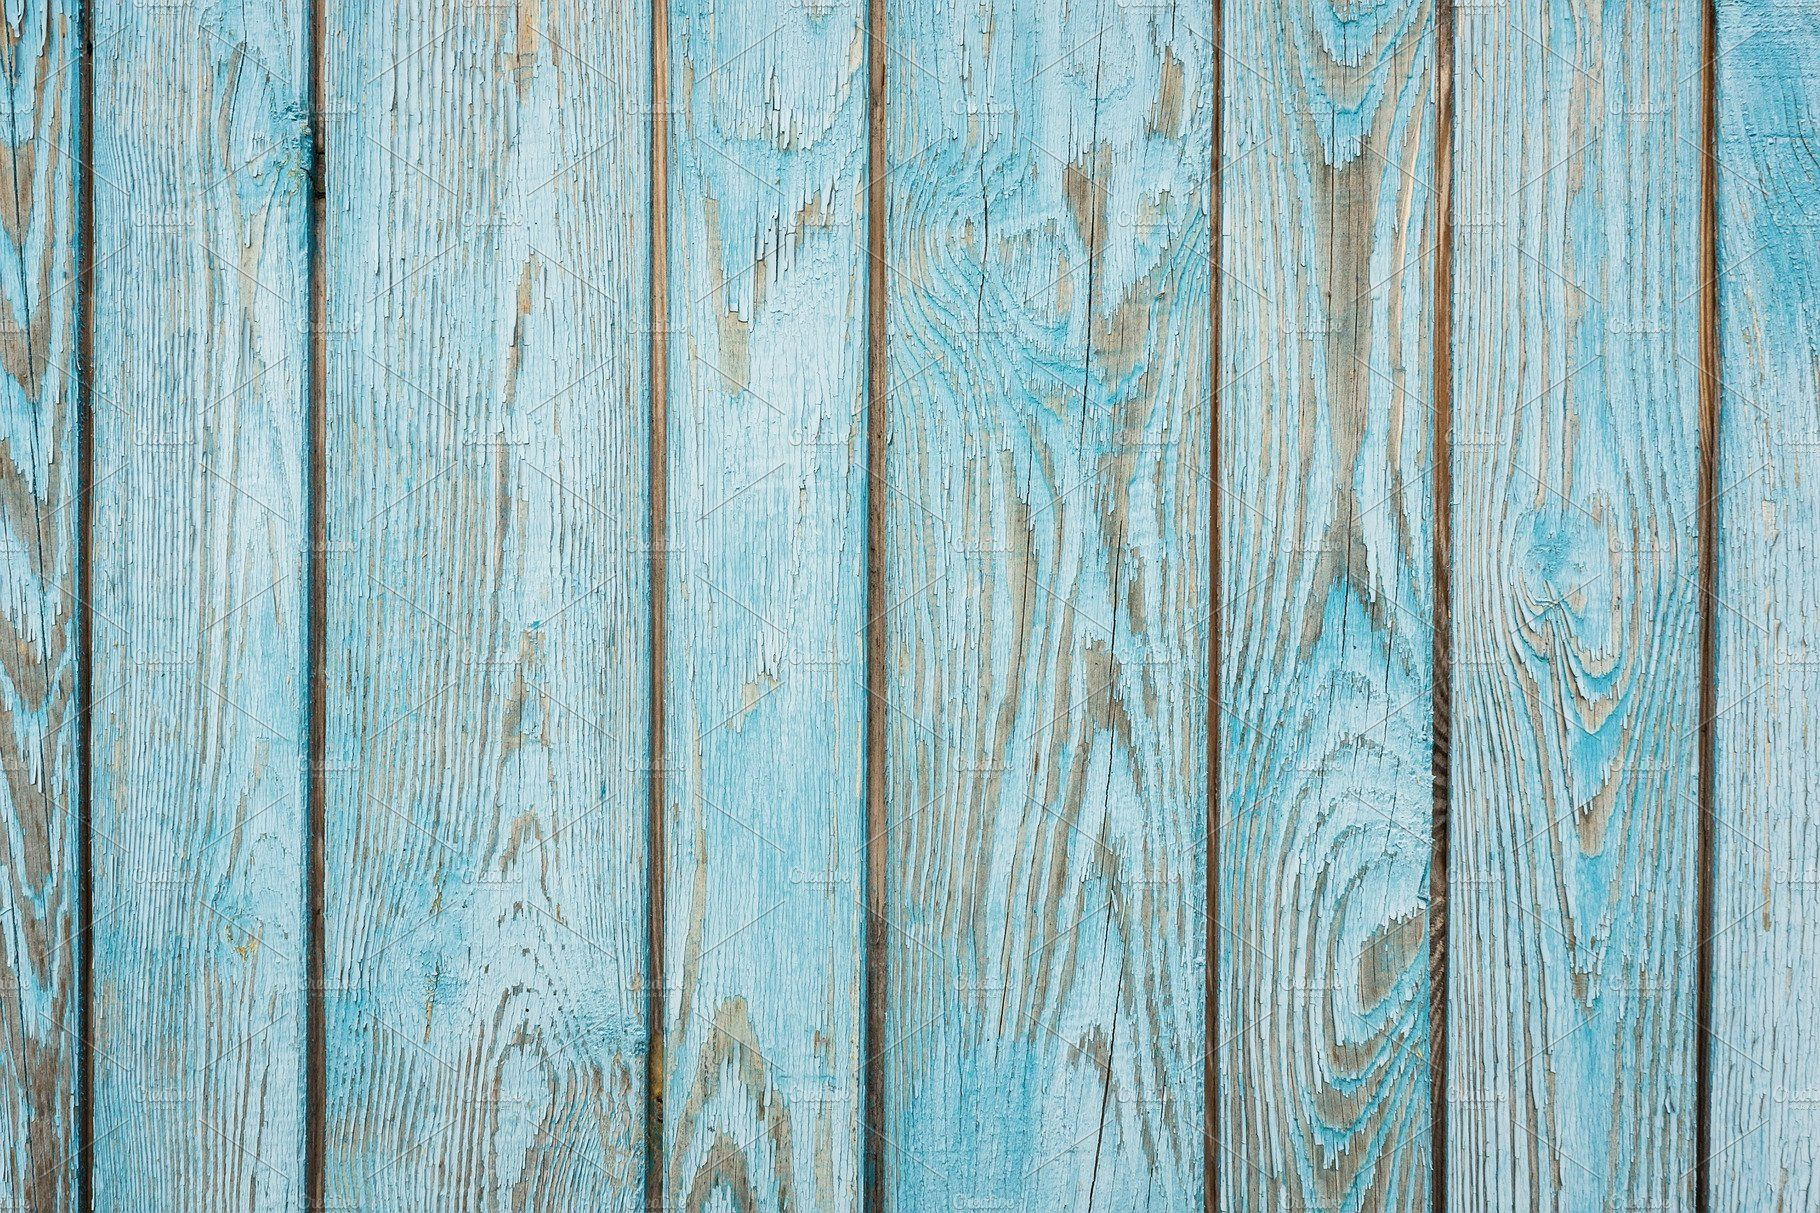 Blue Wood Texture Background Surface Textured Background Wood Texture Background Blue Wood